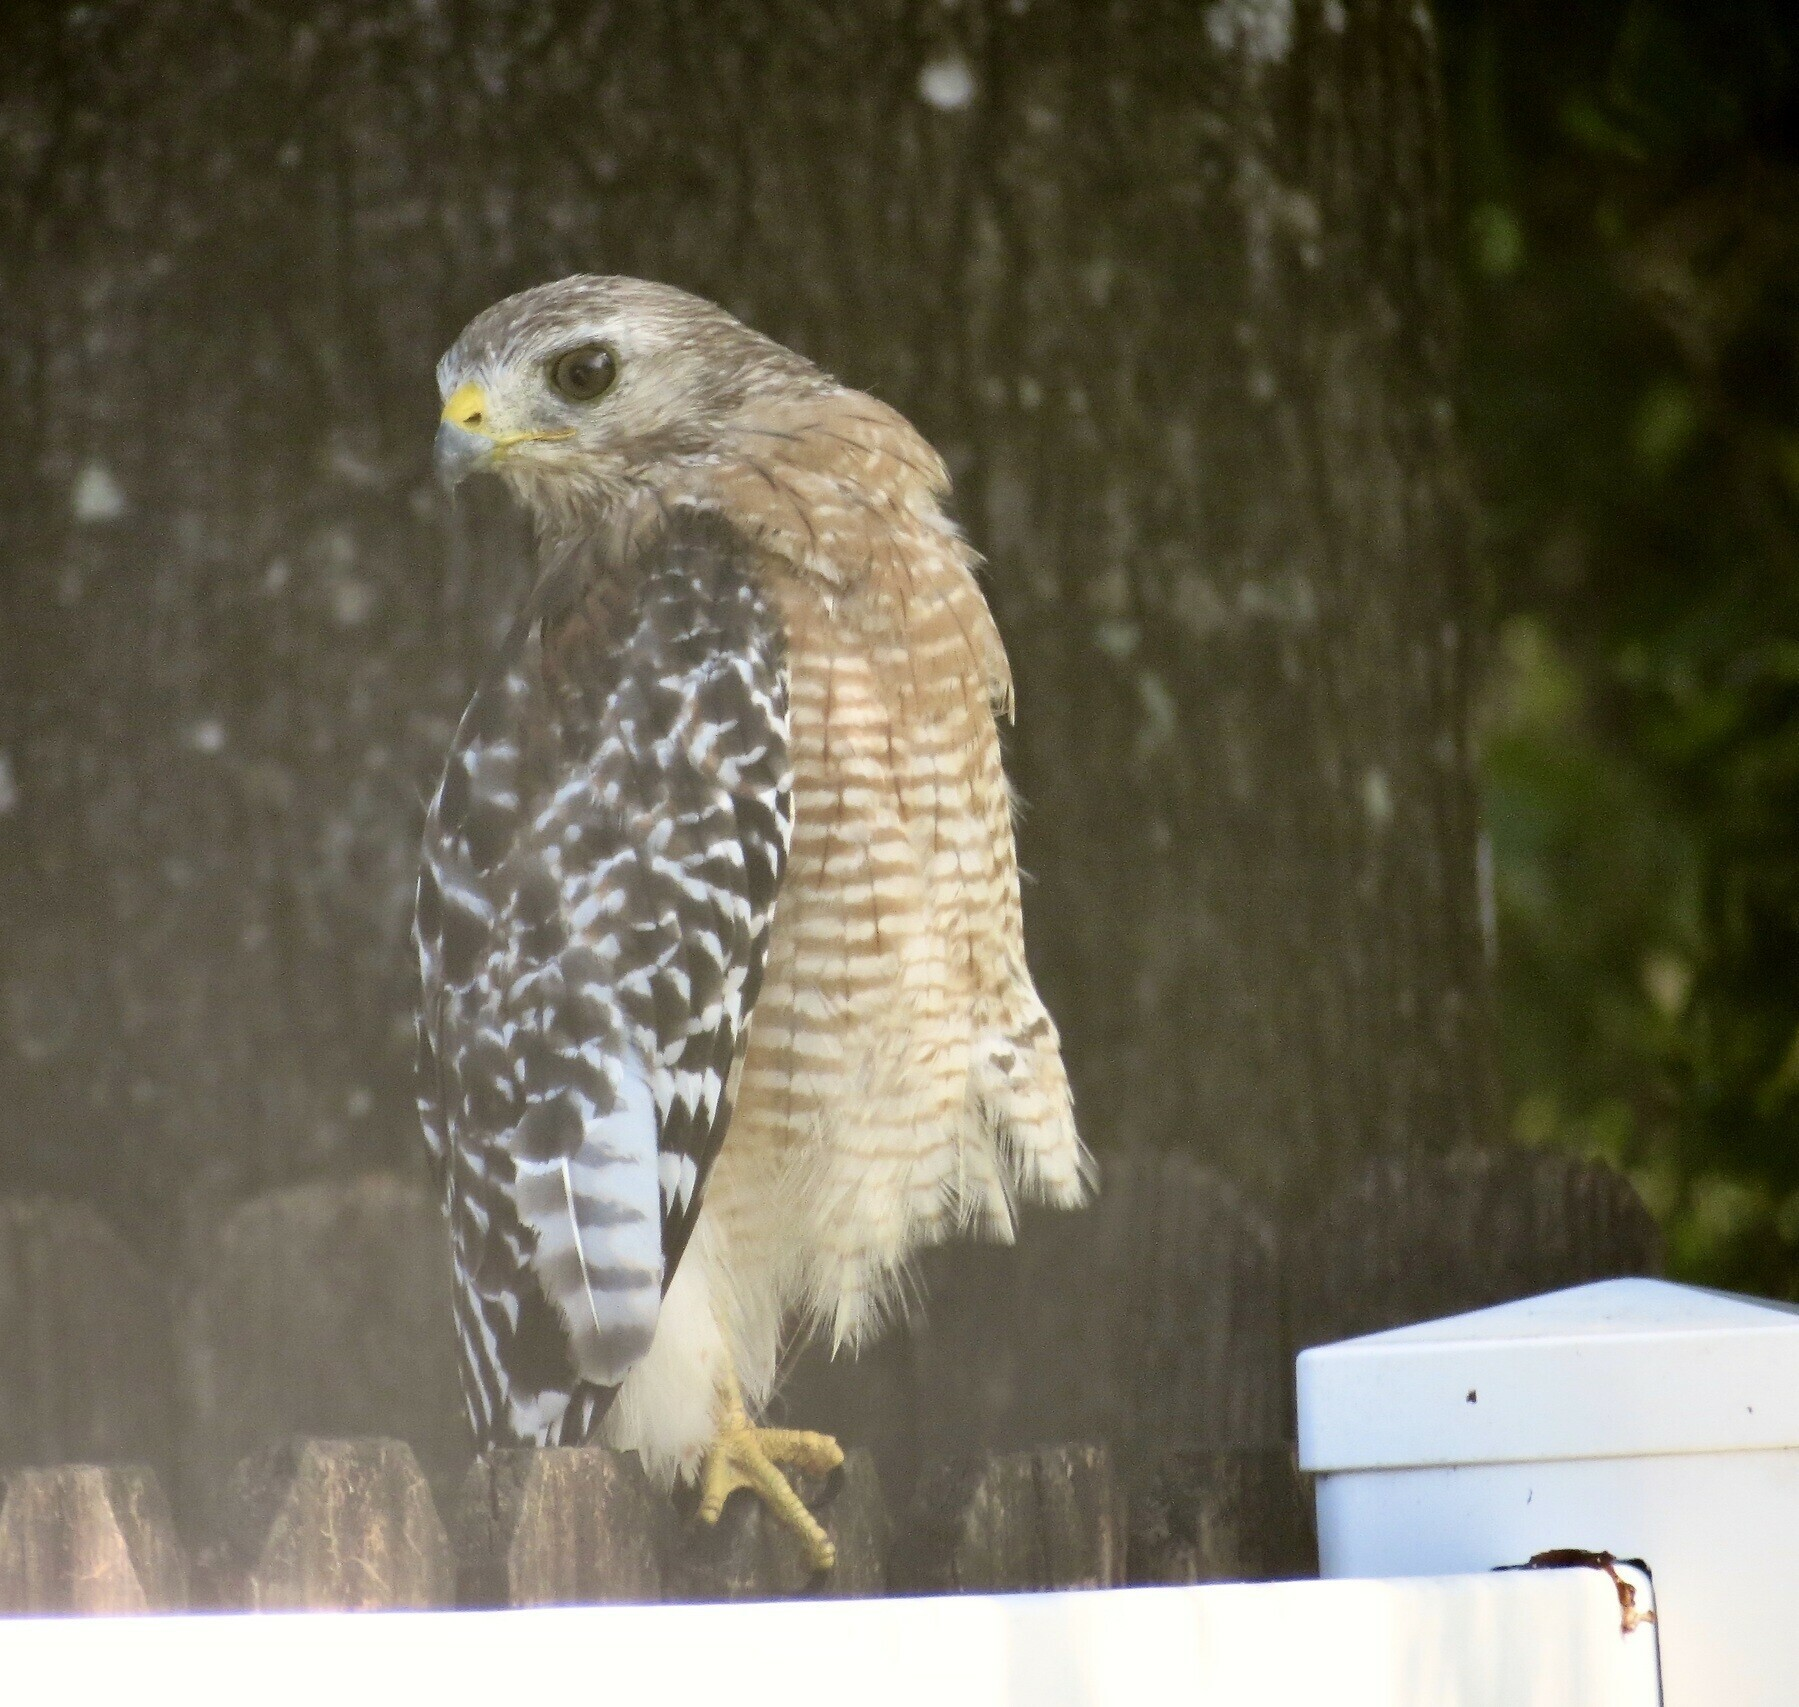 A red-shouldered hawk sits on a wood and vinyl fence surveying a backyard.